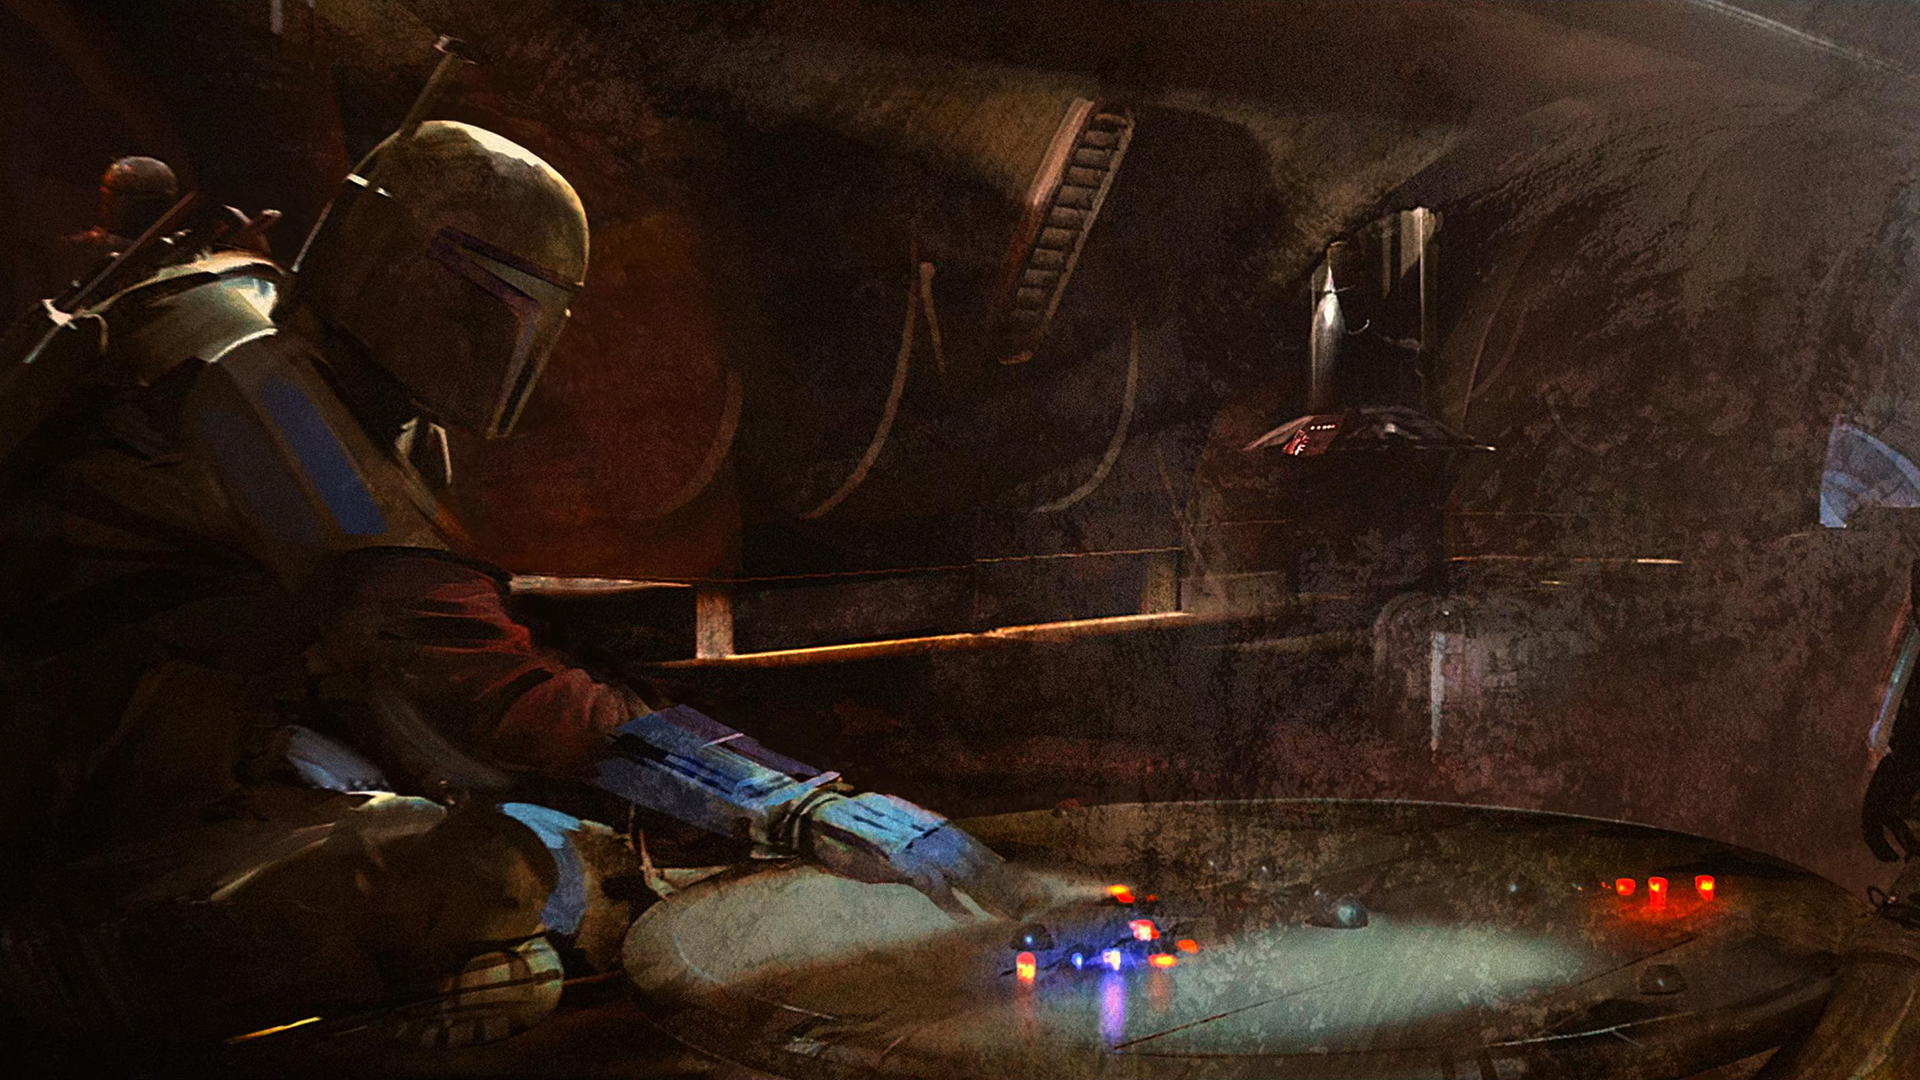 The Mandalorian Art 2020 Wallpapers Wallpaper Cave